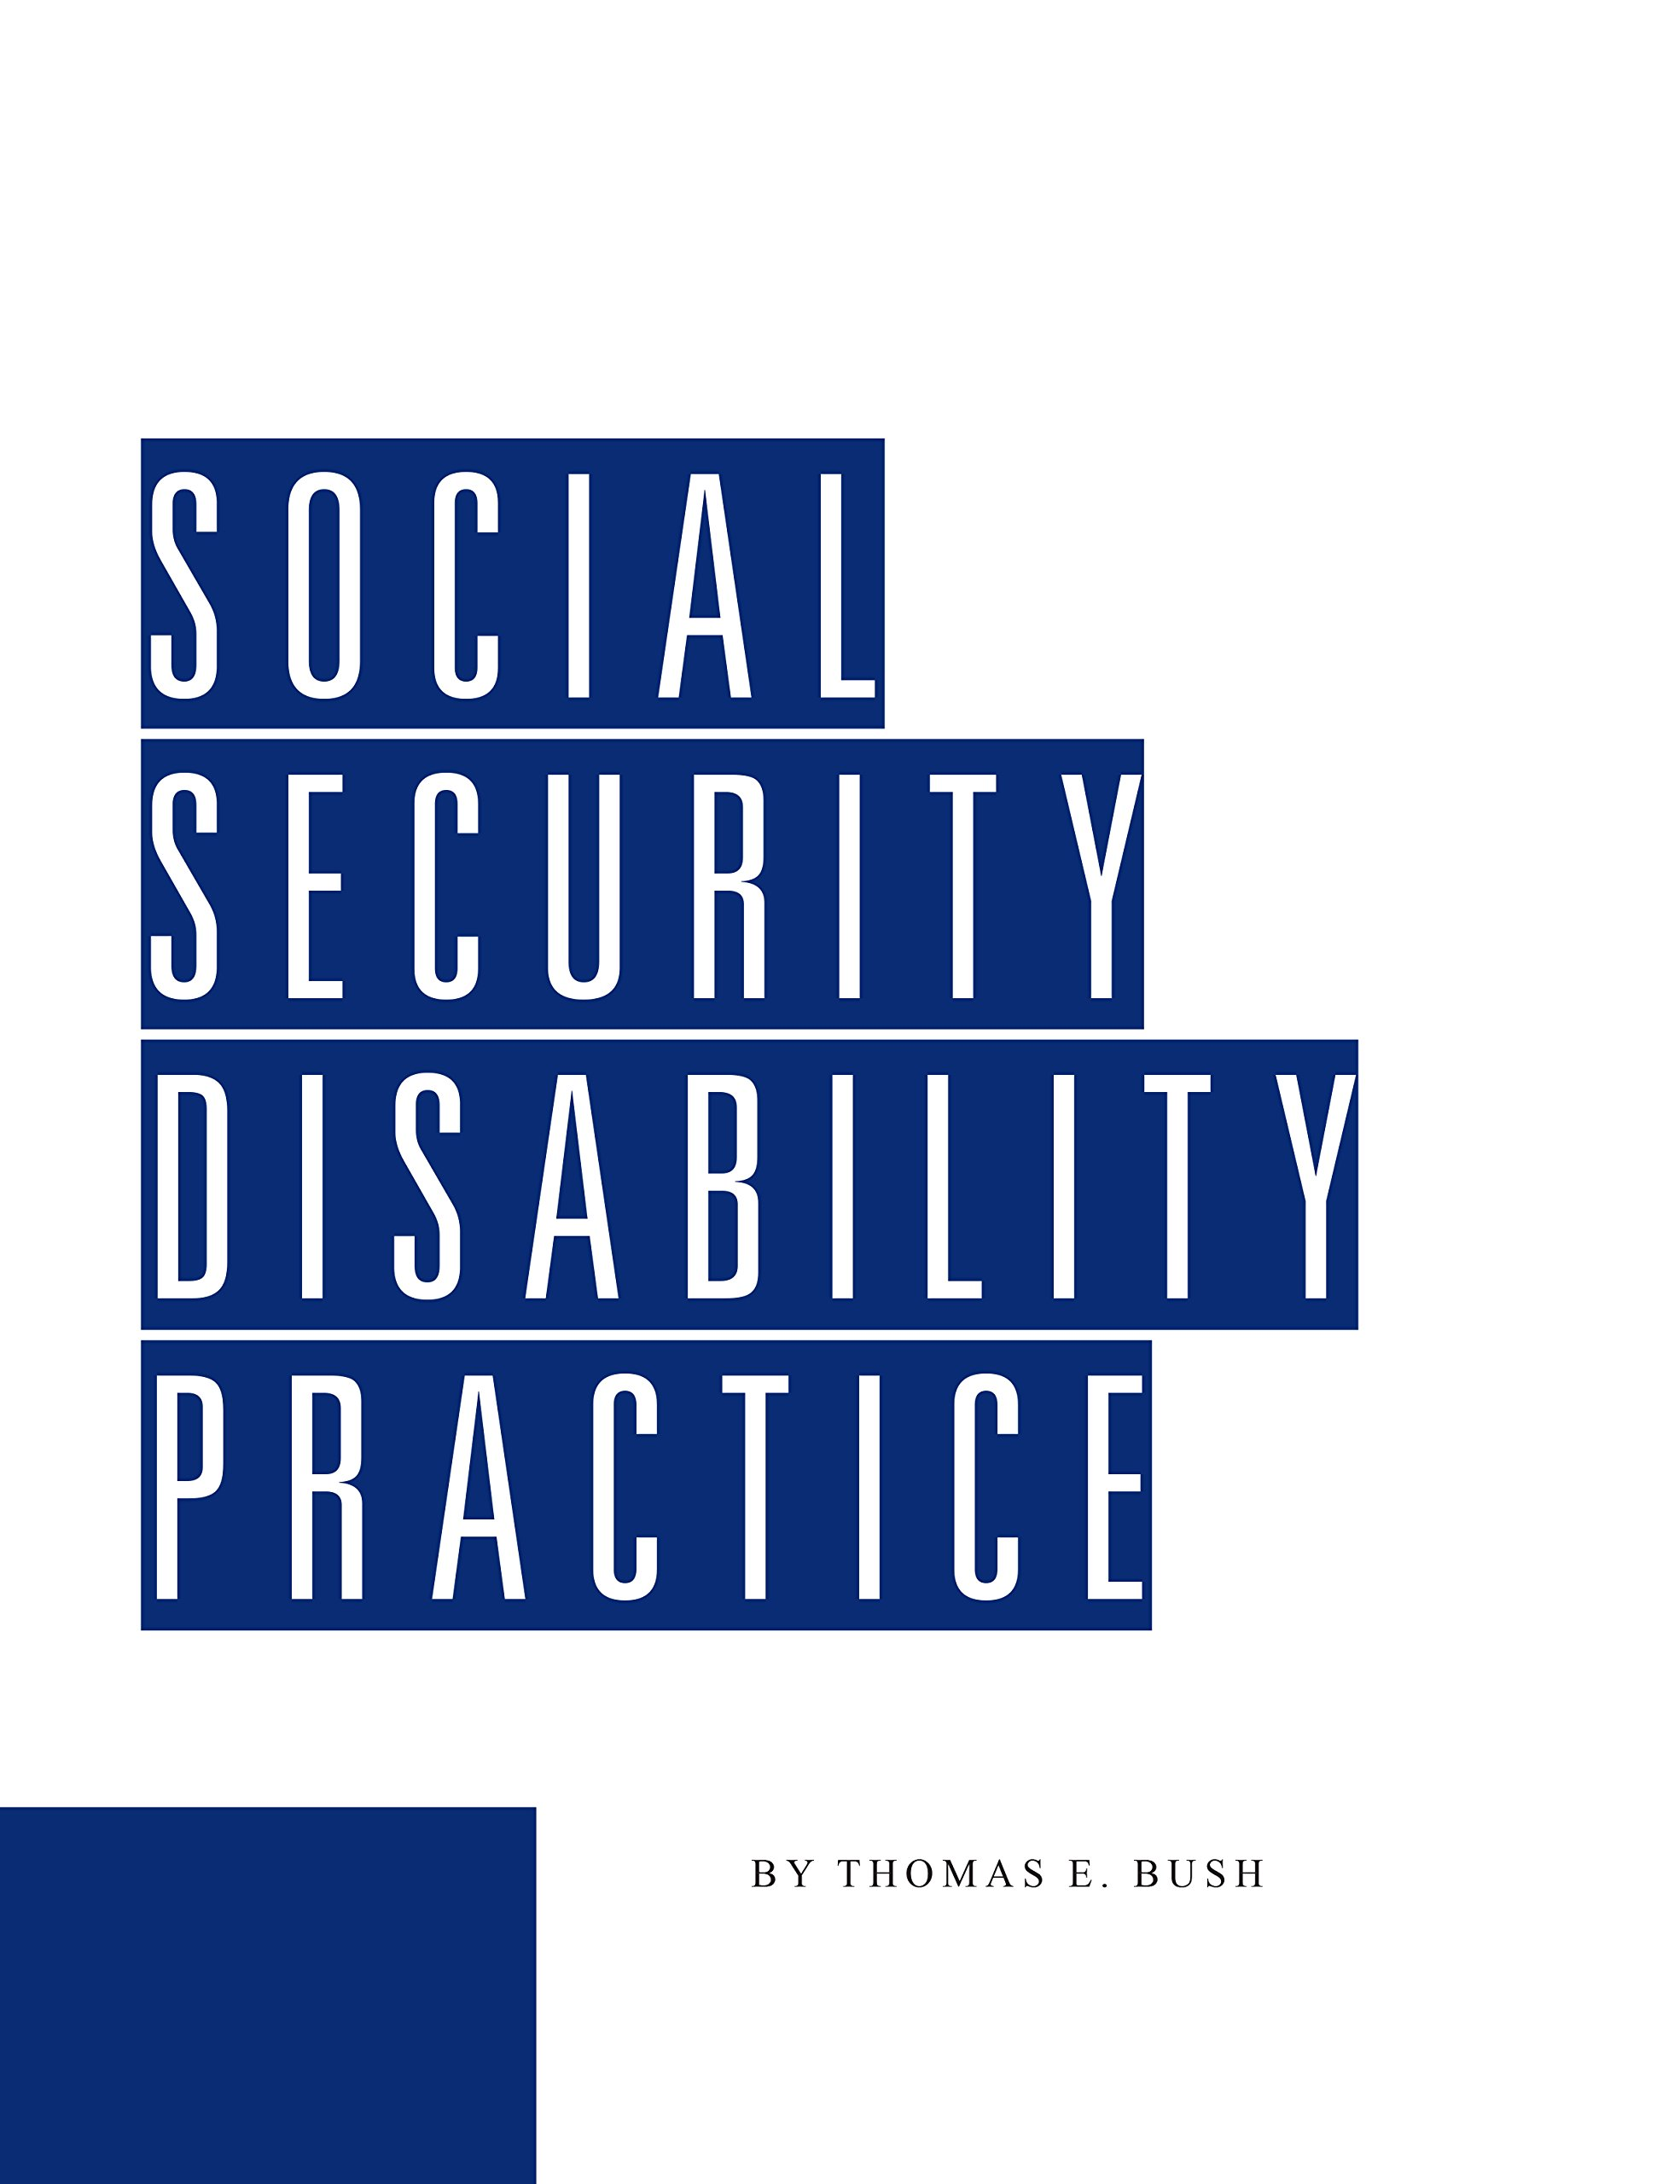 Social Security Disability Practice (Revision 24) ebook